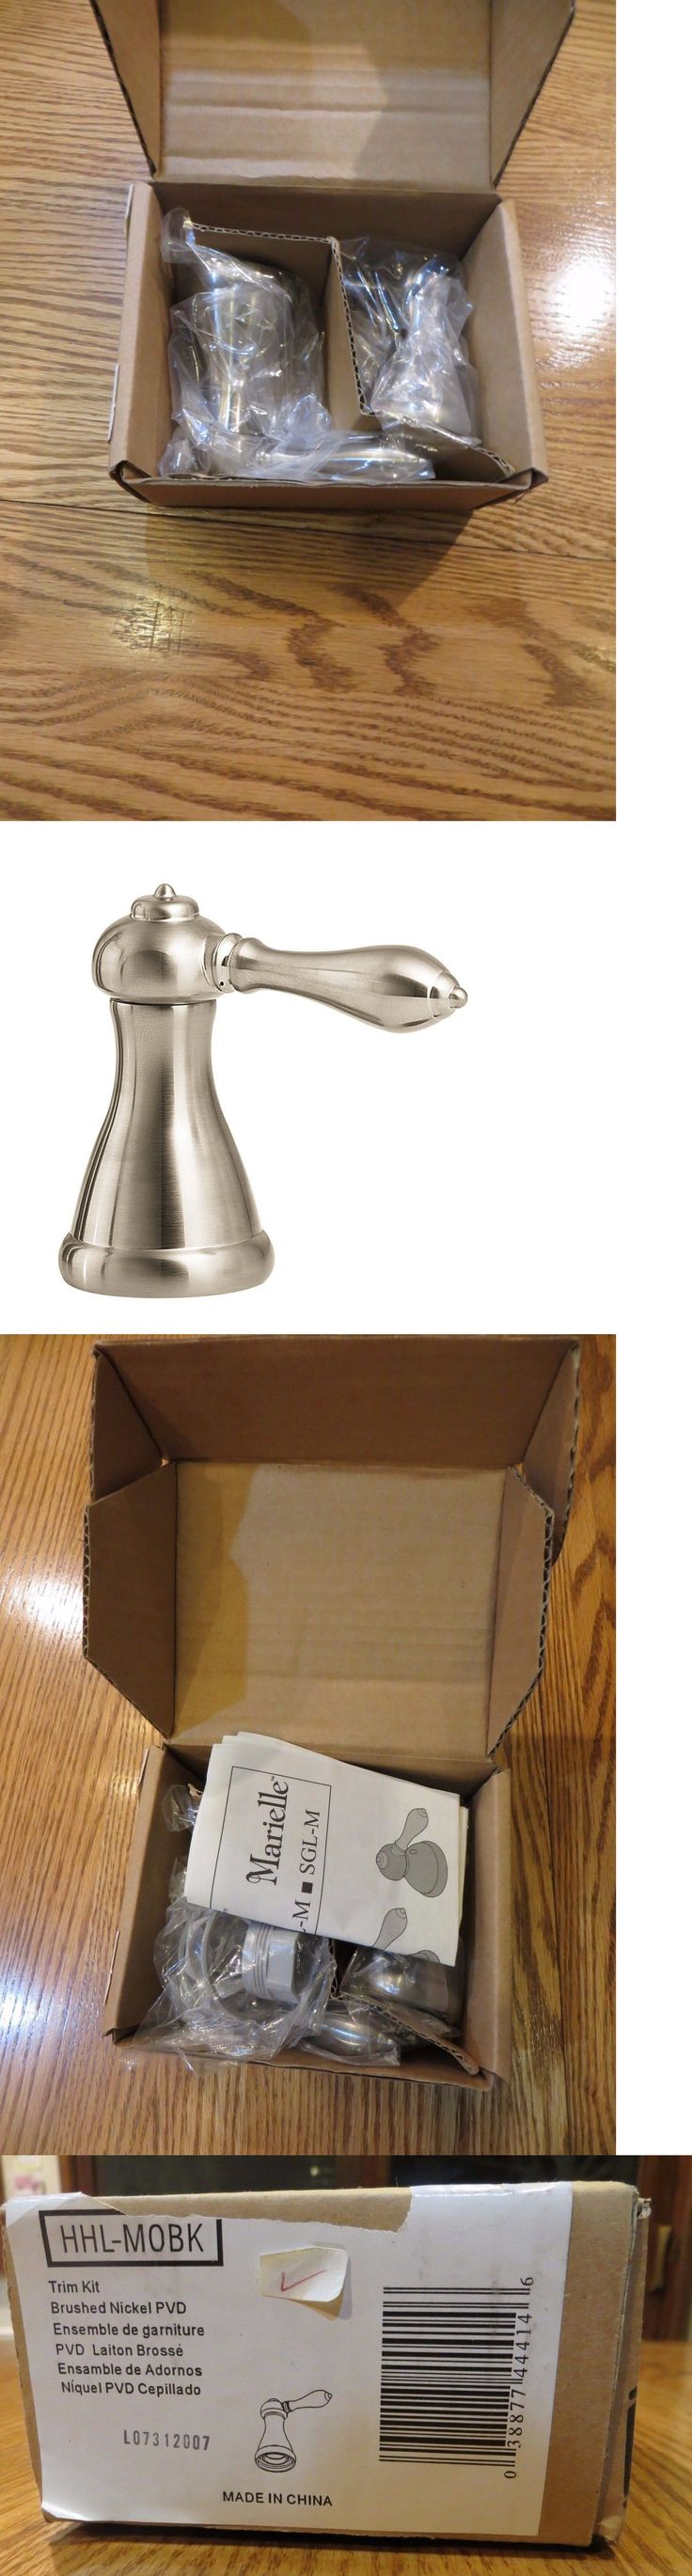 Other Home Plumbing and Fixtures 3191: 2 Pfister Marielle Brushed Nickel Faucet Handle(S) Hhl-M0bk Roman Tub, 8 Sink -> BUY IT NOW ONLY: $54.95 on eBay!